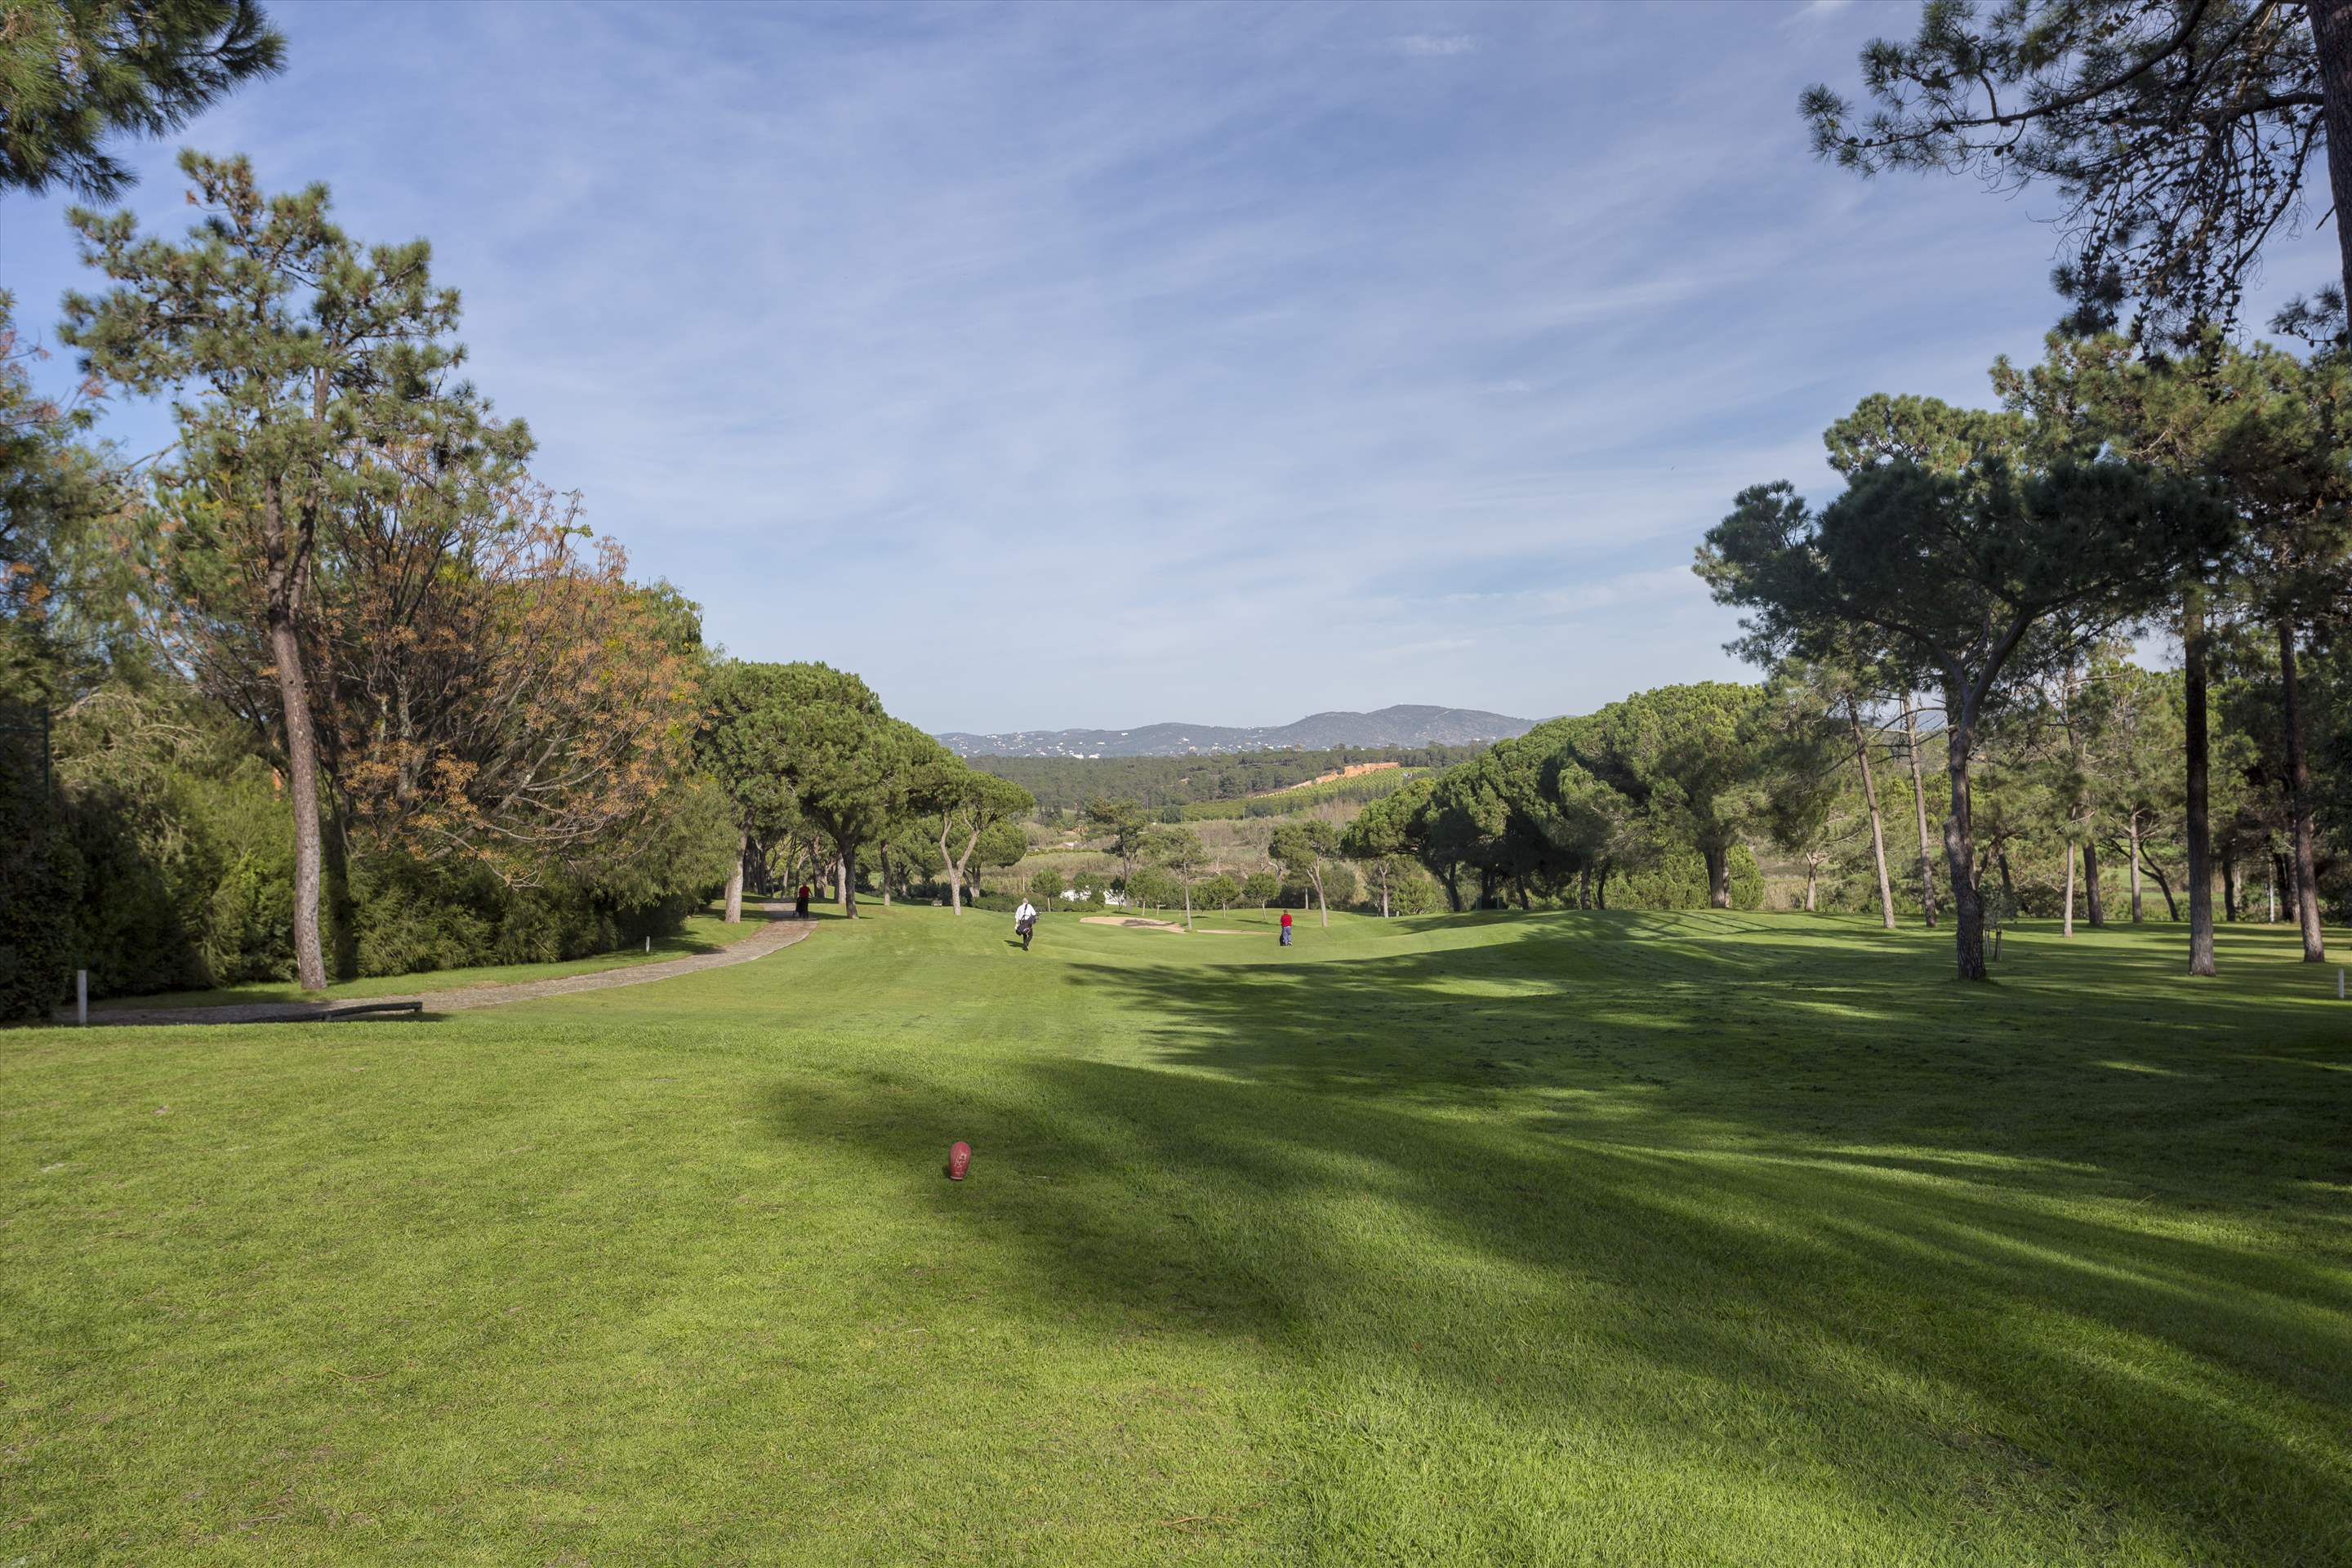 Villa Palmeiras Altas, 5 bedroom villa in Quinta do Lago, Algarve Photo #39